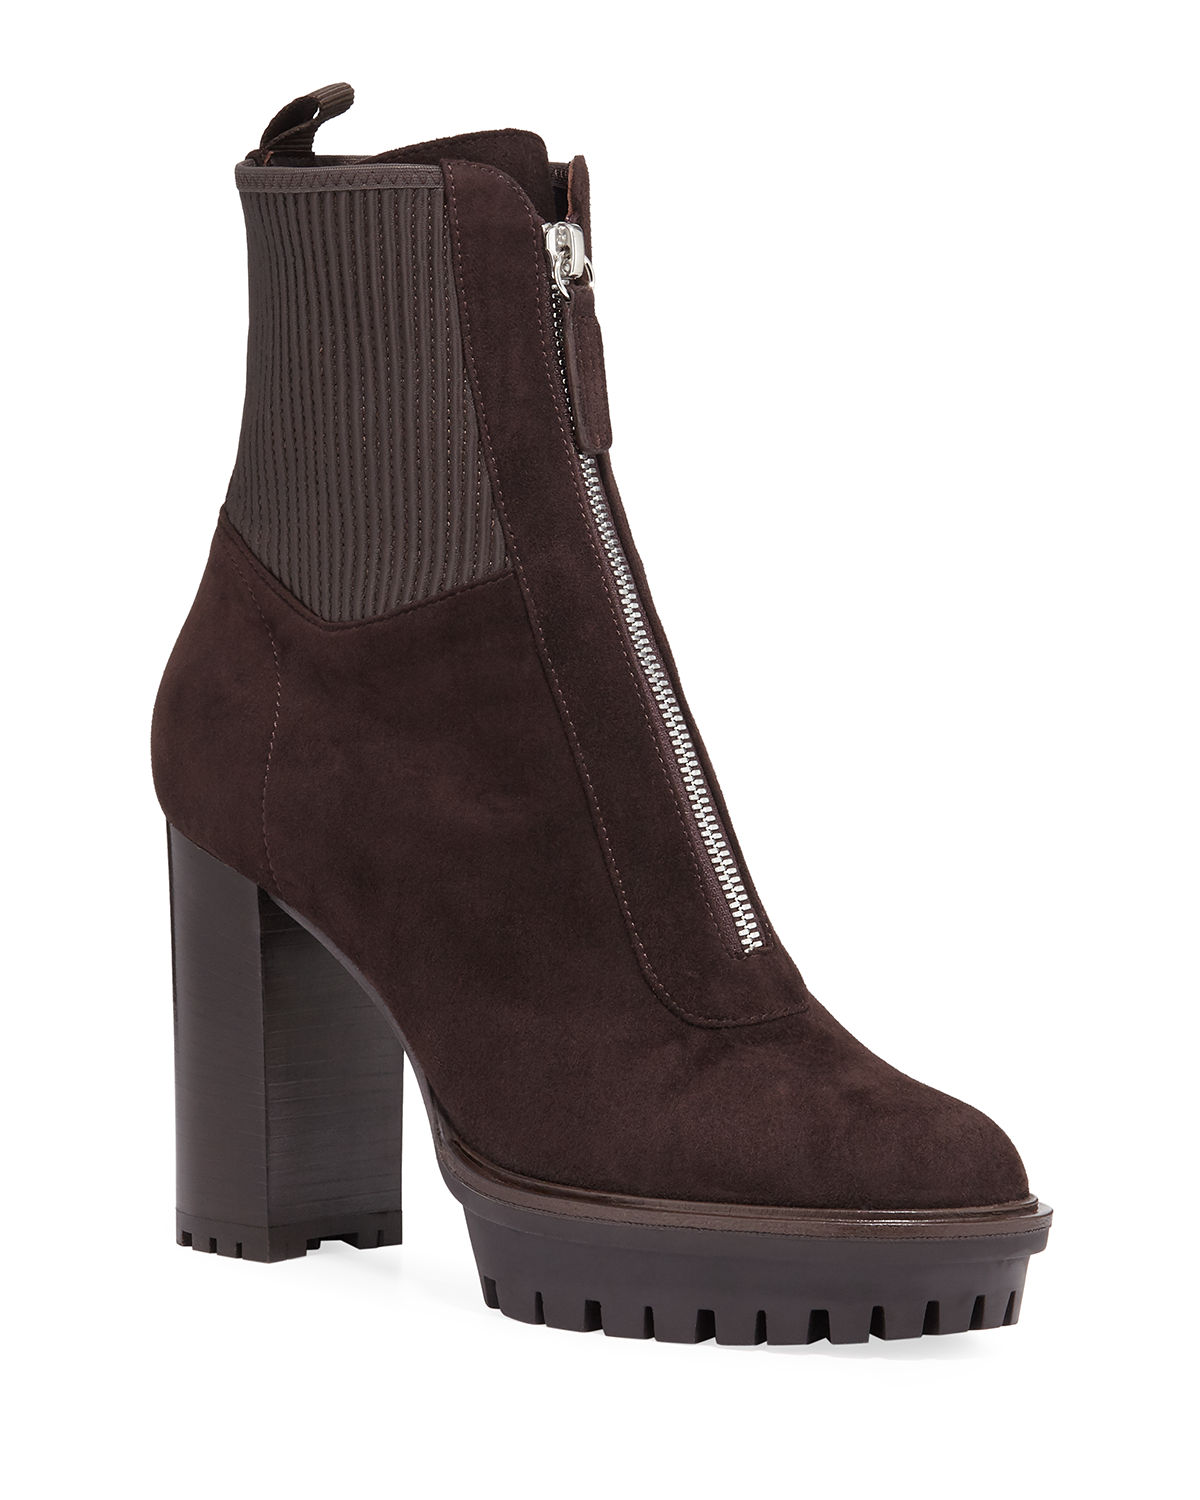 Suede Lug-Sole Zip Booties